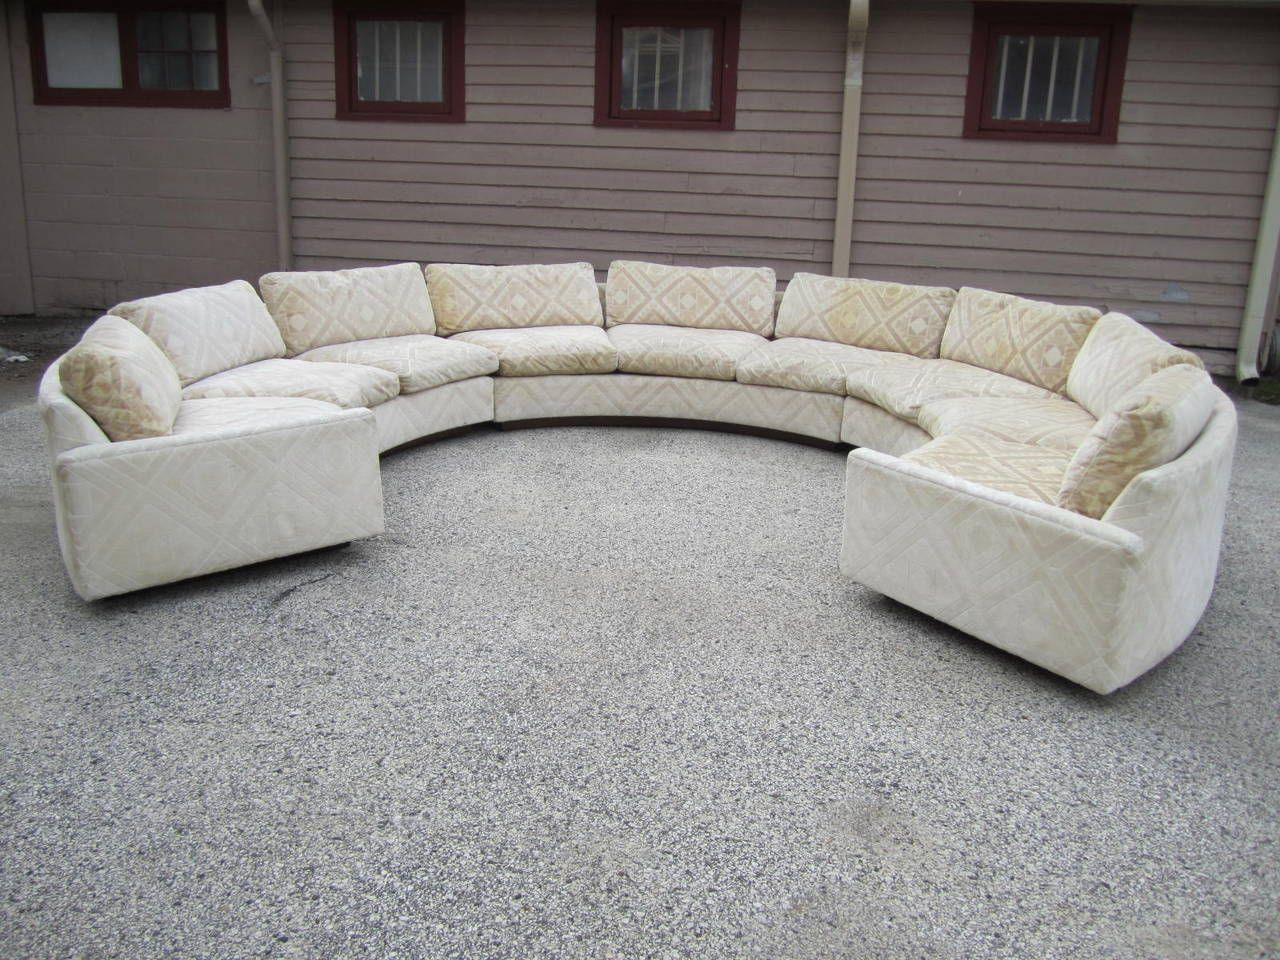 Bon Spectacular Three Piece Milo Baughman Circular Sofa, Mid Century Modern |  From A Unique Collection Of Antique And Modern Sectional Sofas At ...